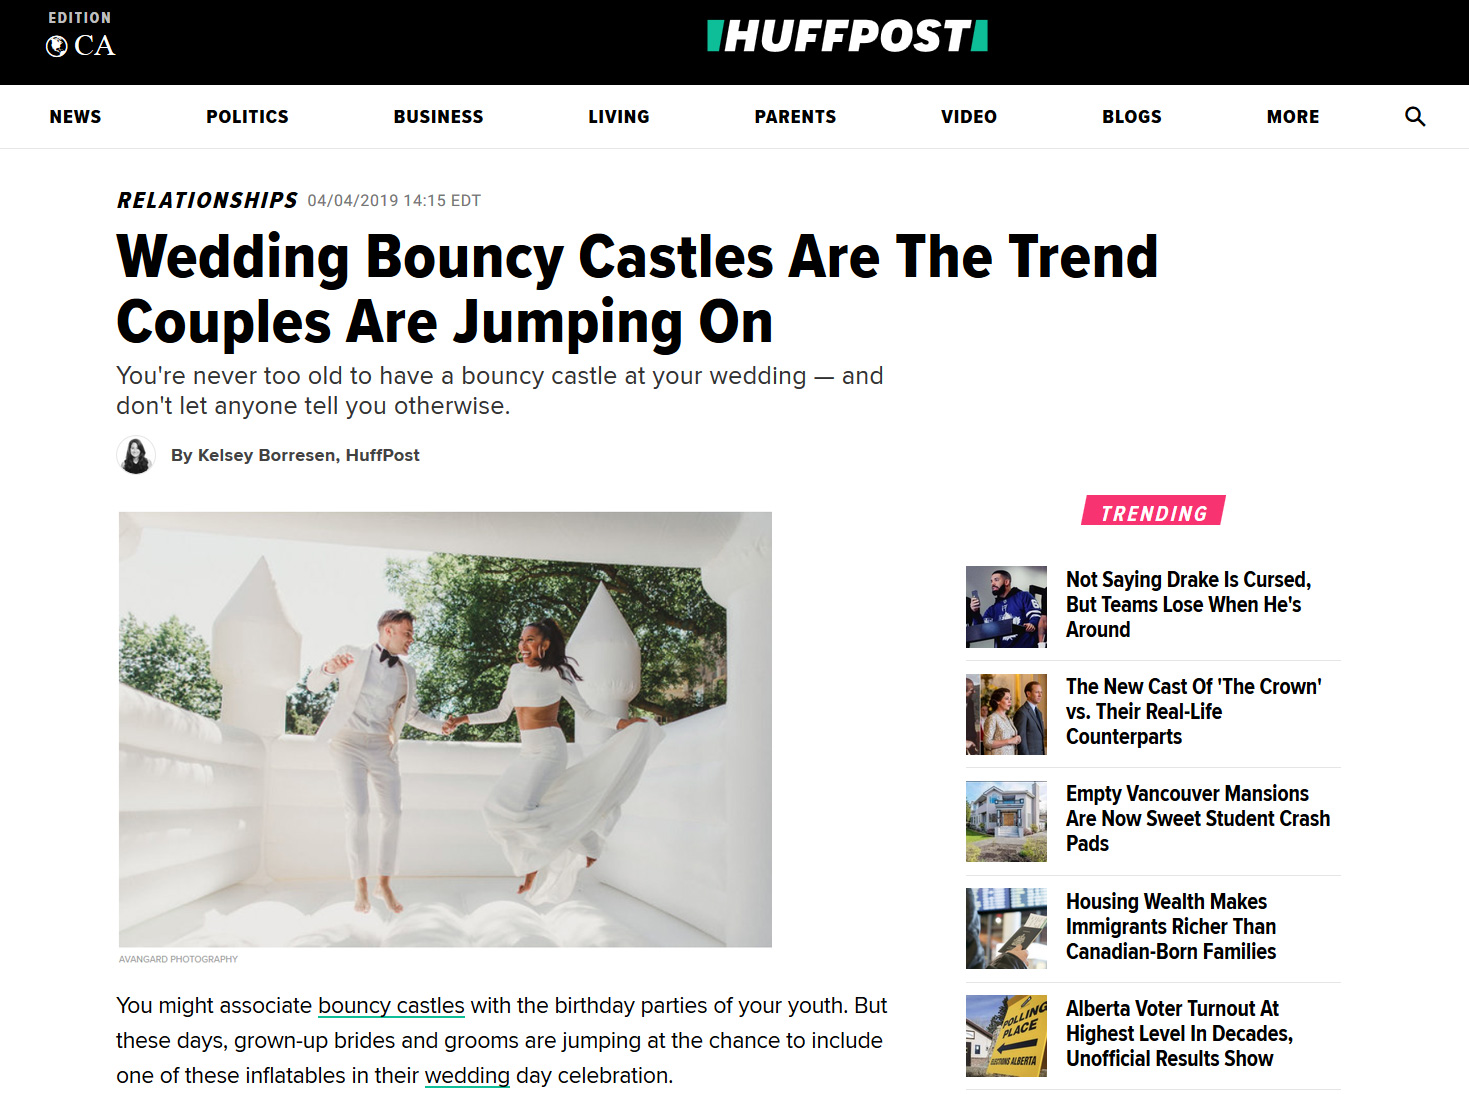 Wedding Bouncy Castles Are The Trend Couples Are Jumping On